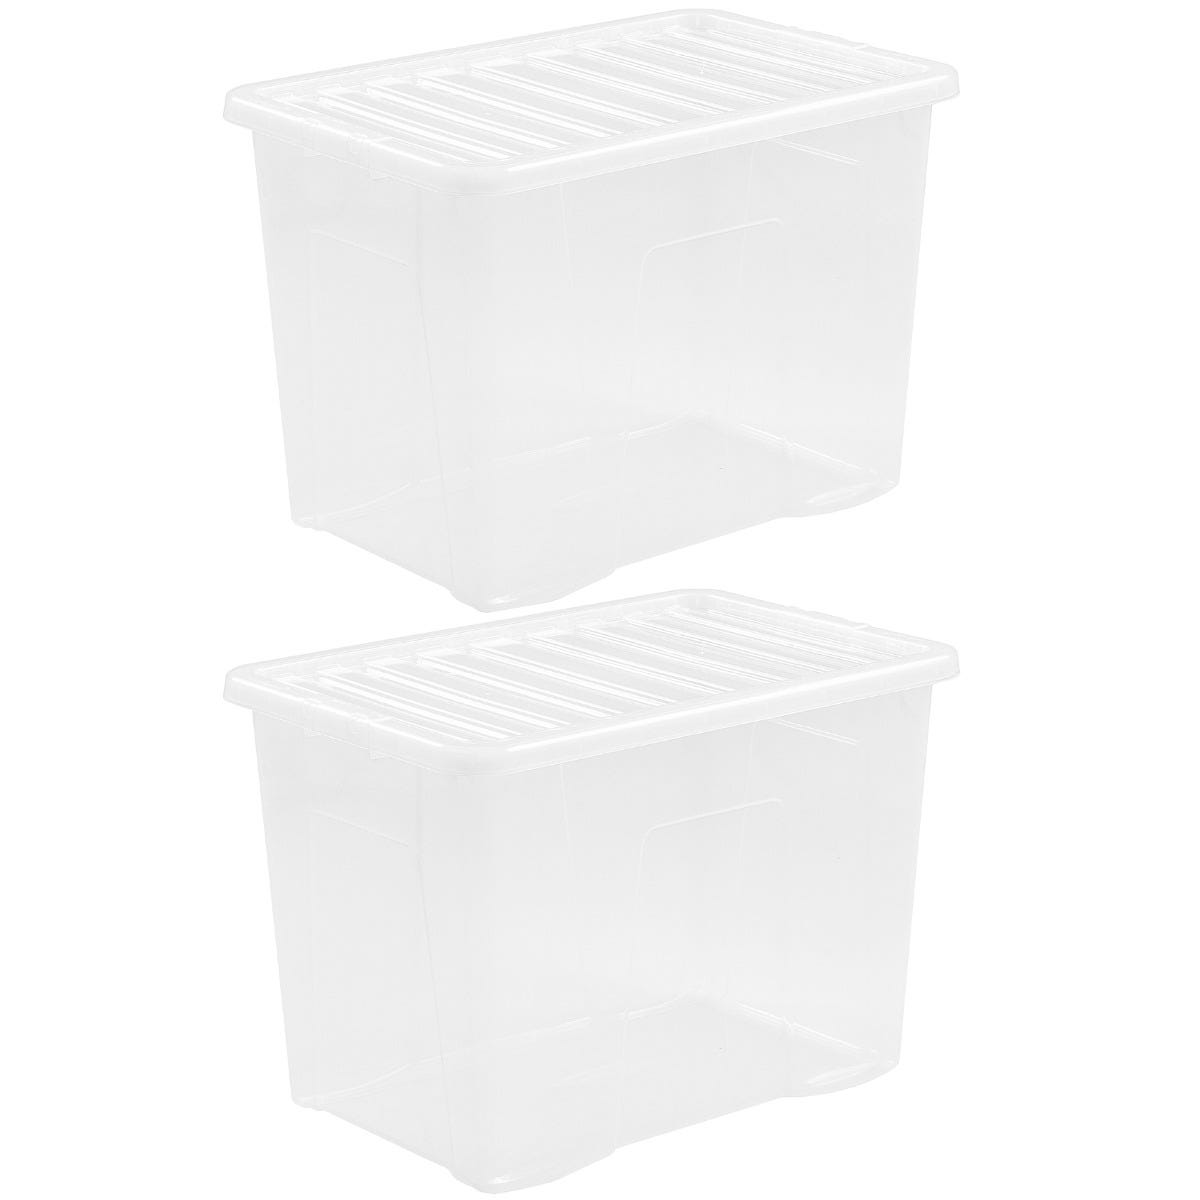 Wham Crystal Clear Storage Box with Lid 80L - Set of 2